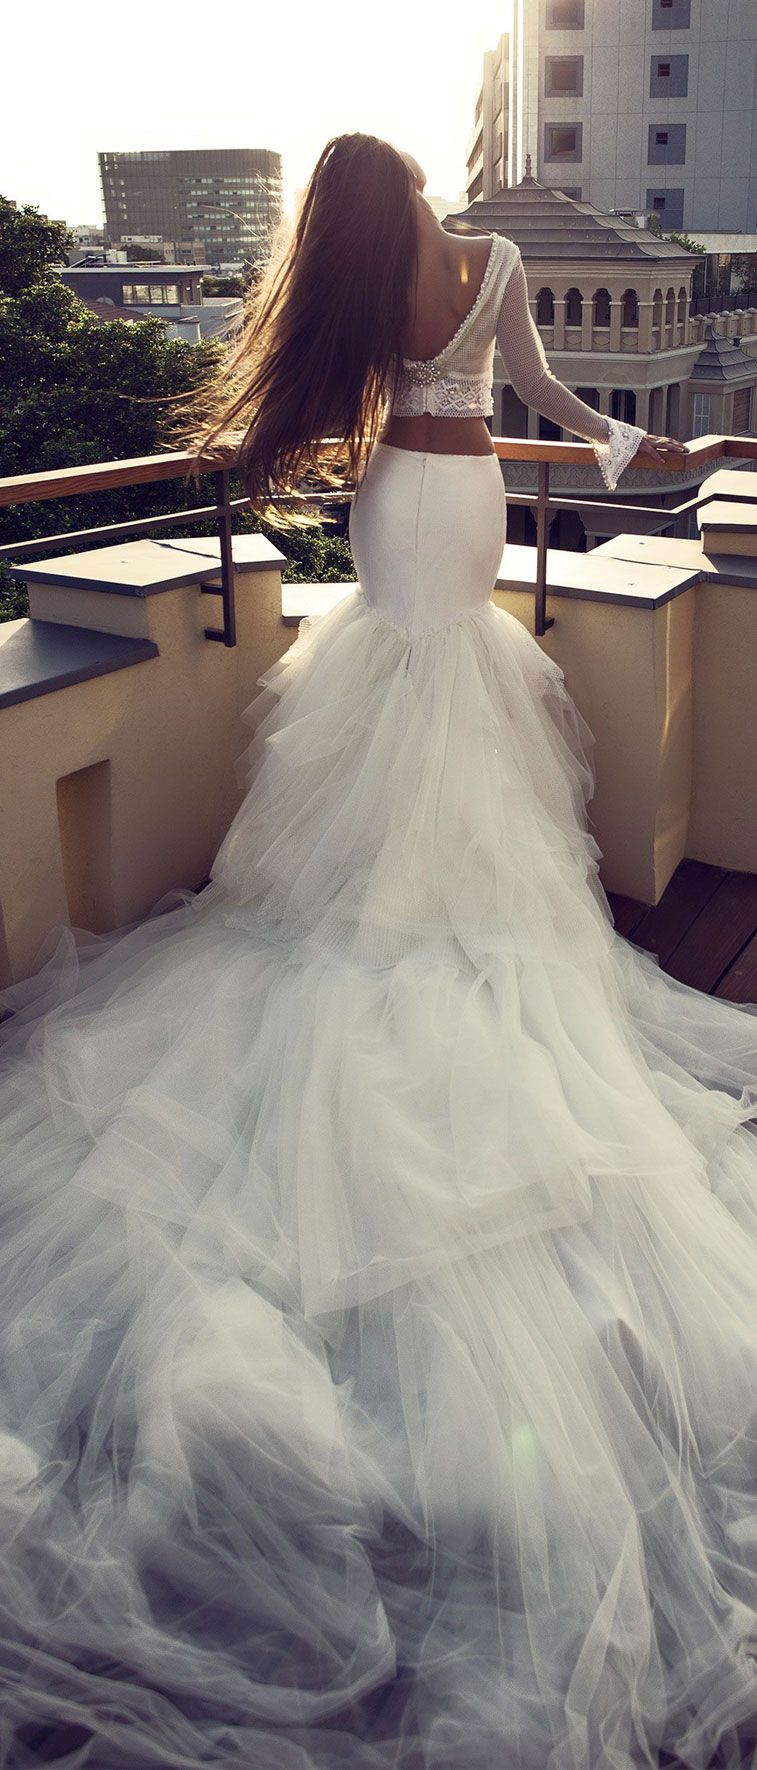 two pieces dramatic wedding dress. long sleeves cotton lace and open net top, handmade crystals work. net and silk skirt with tull layers and a dramatic extra long train  #weddingdress #weddinggown